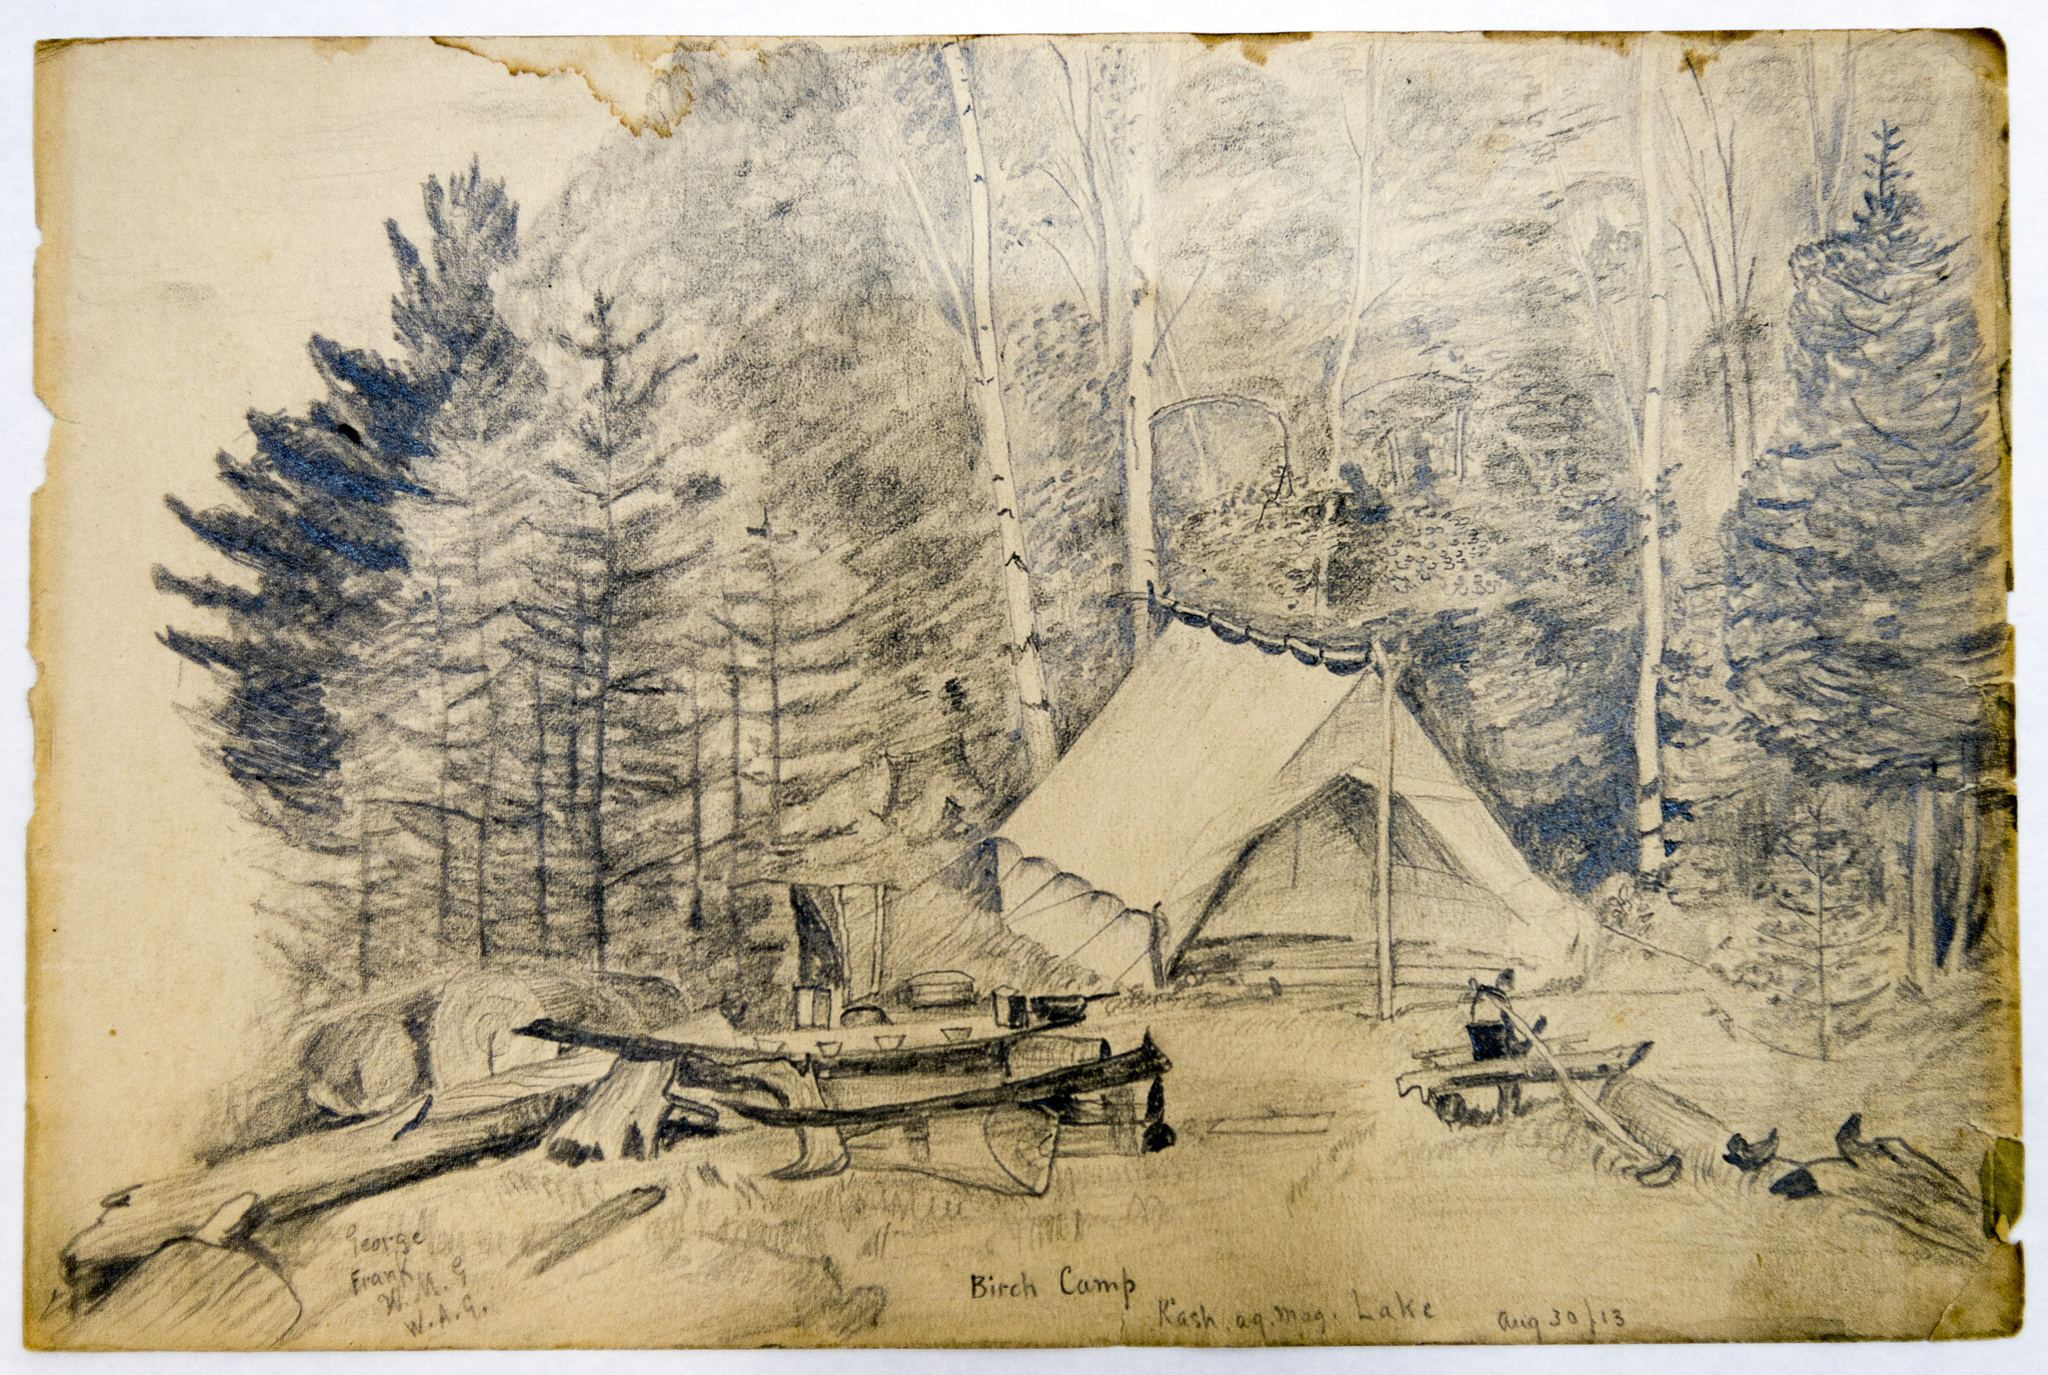 Black-and-white pencil drawing of large tent and assorted camping supplies